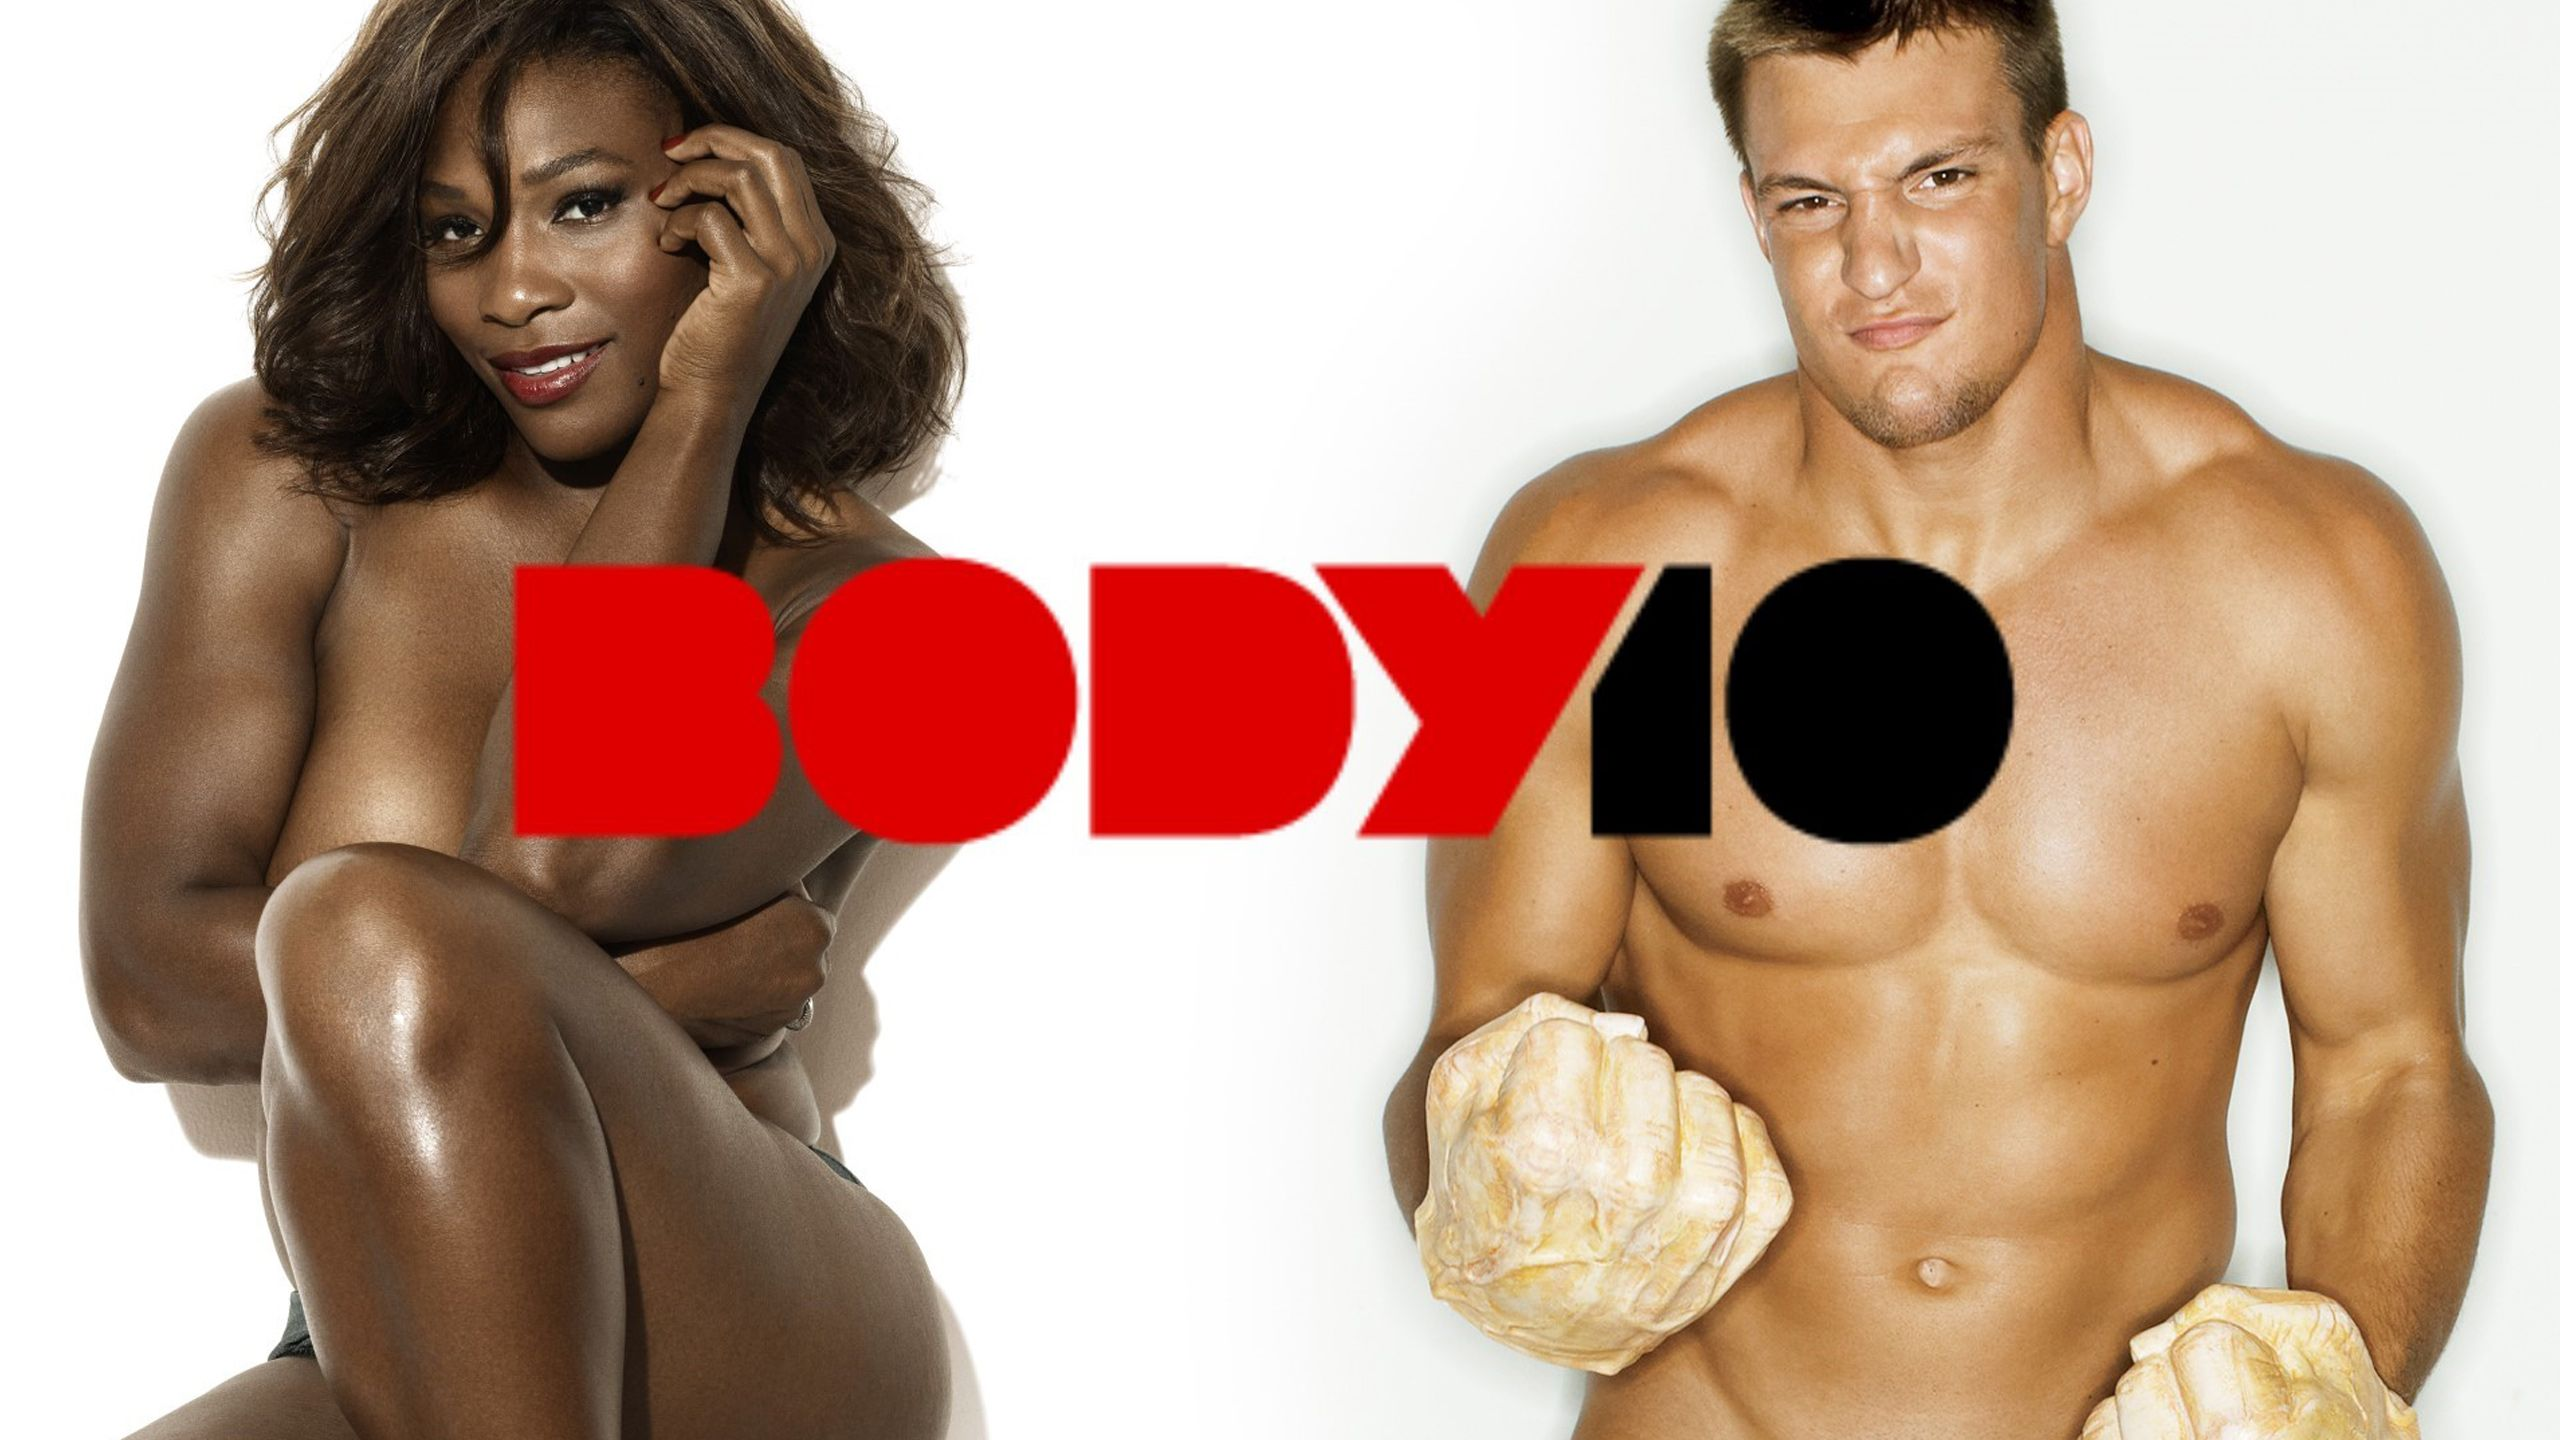 BODY10: A Decade of ESPN The Magazine's Body Issue